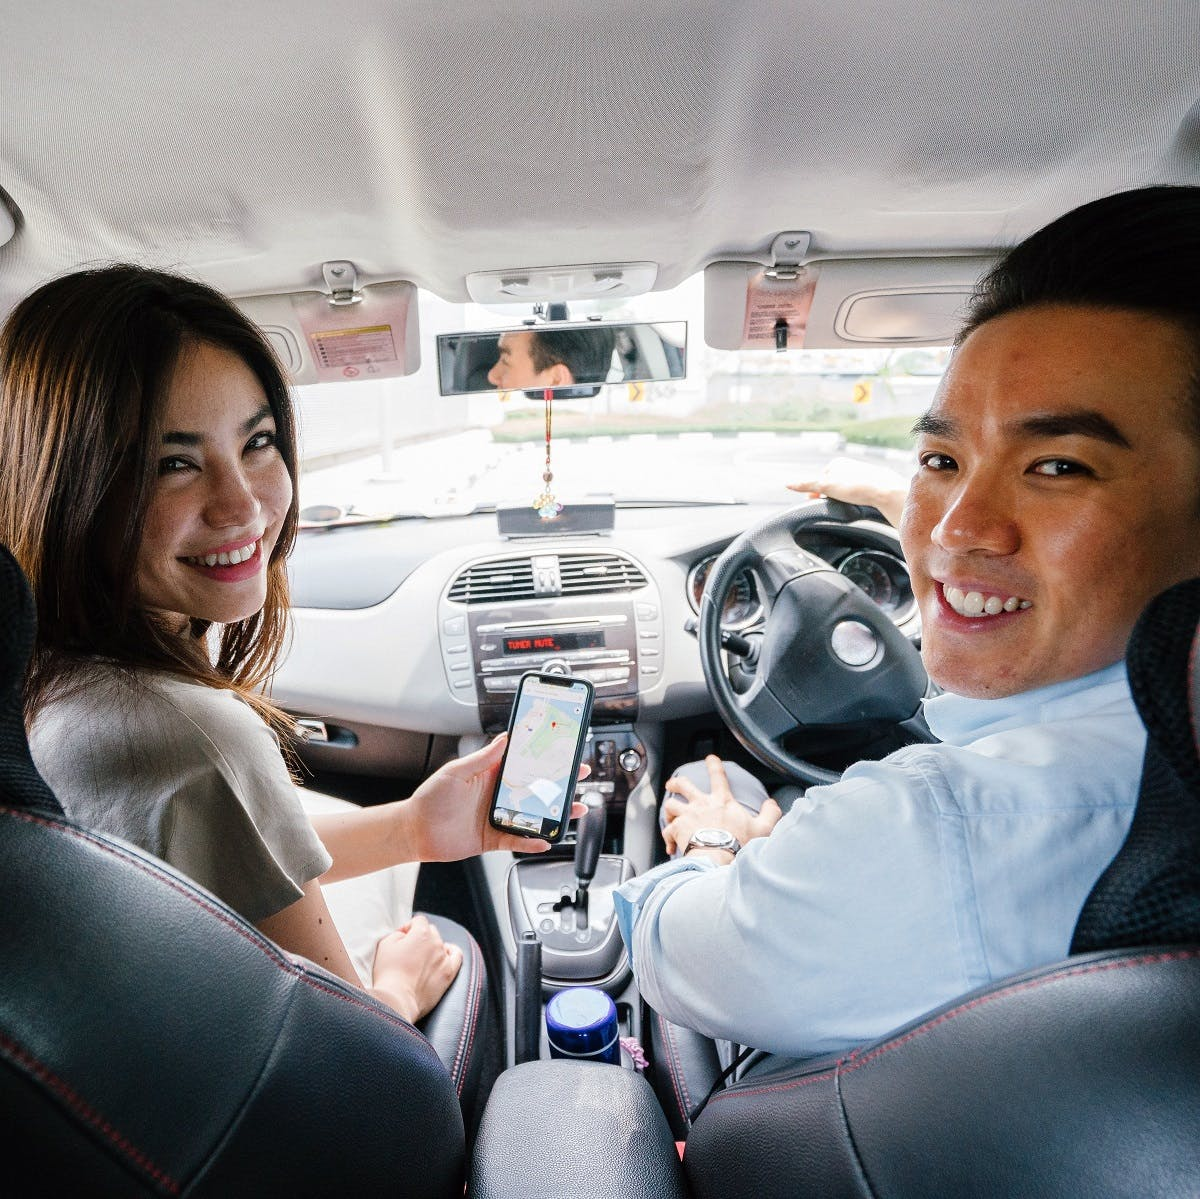 A lady and a man sharing a ride as part of a carpooling scheme. A social and cost saving way to a green commute.